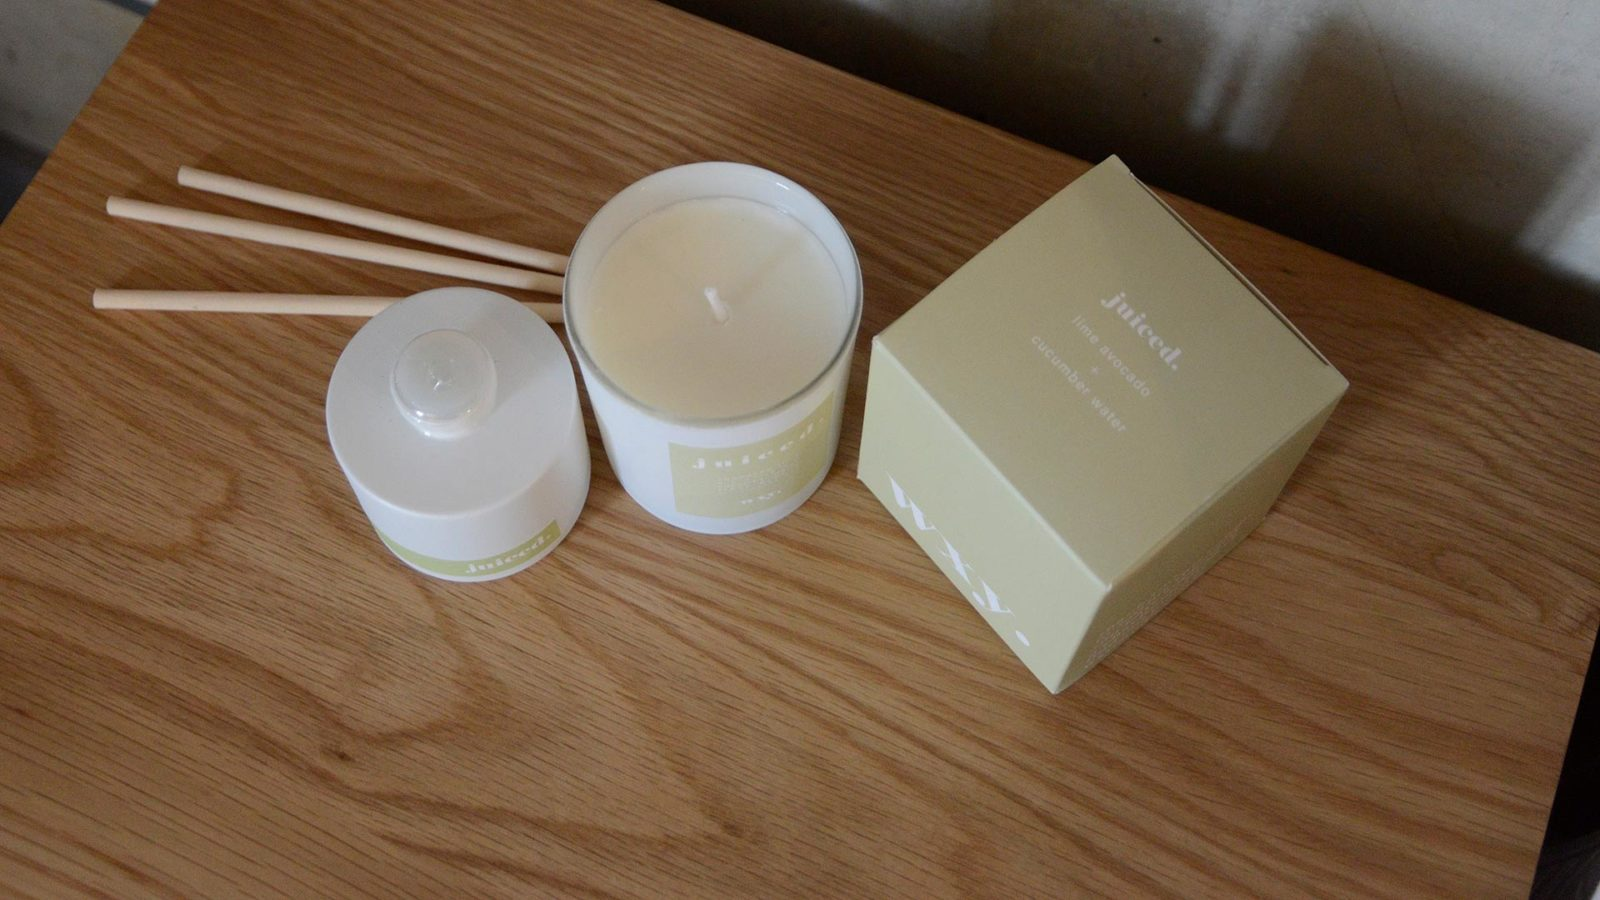 scented candles and diffusers